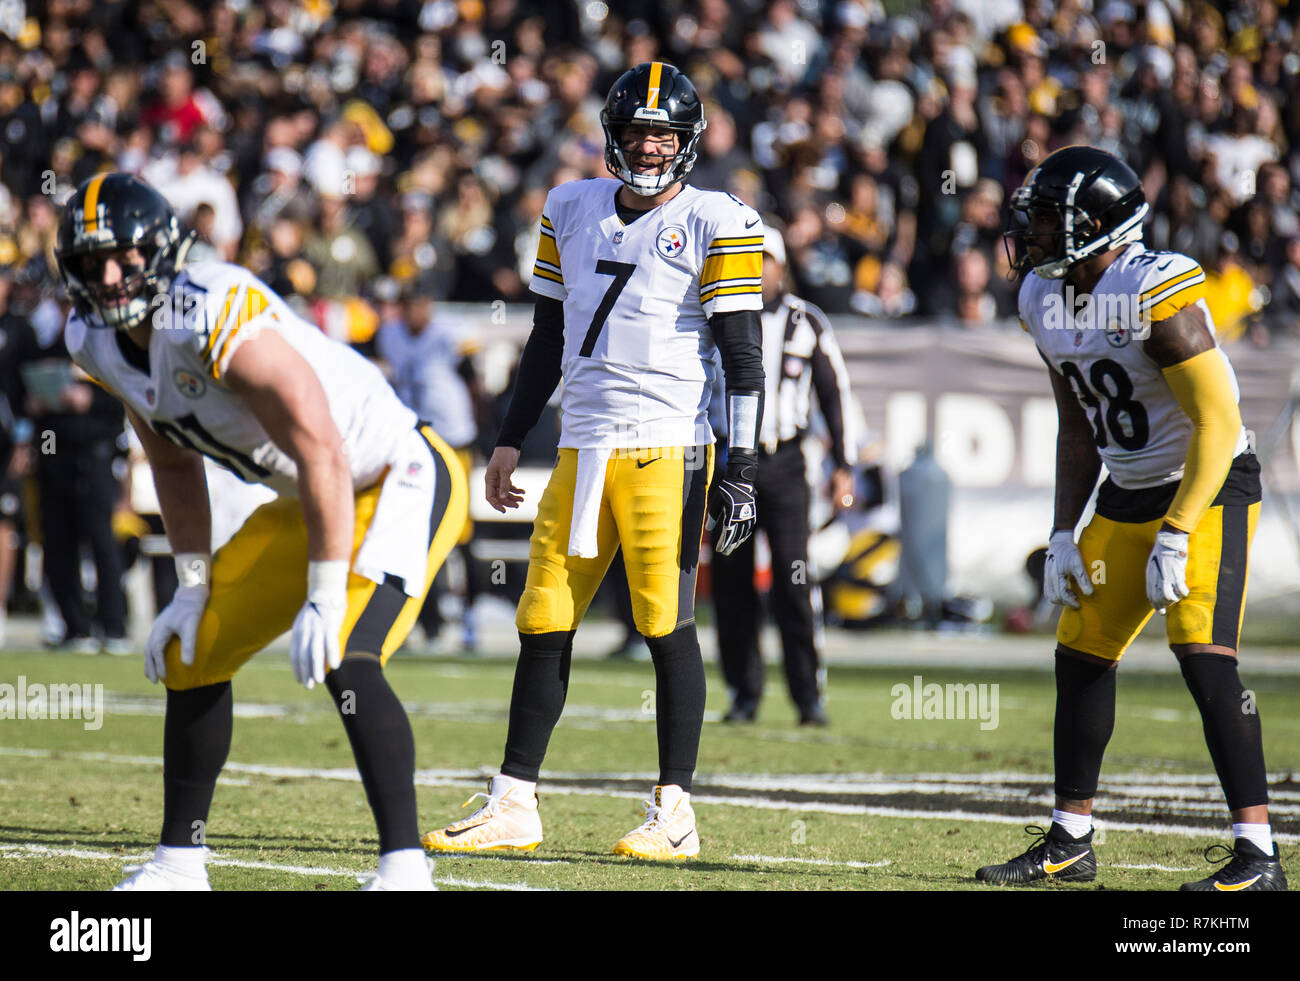 Dec 09 2018 Oakland U.S.A CA Pittsburgh Steelers quarterback Ben Roethlisberger (7) passed for 282 yards with 2 TDs during the NFL Football game between Pittsburgh Steelers and the Oakland Raiders 21-24 lost at O.co Coliseum Stadium Oakland Calif. Thurman James/CSM - Stock Image